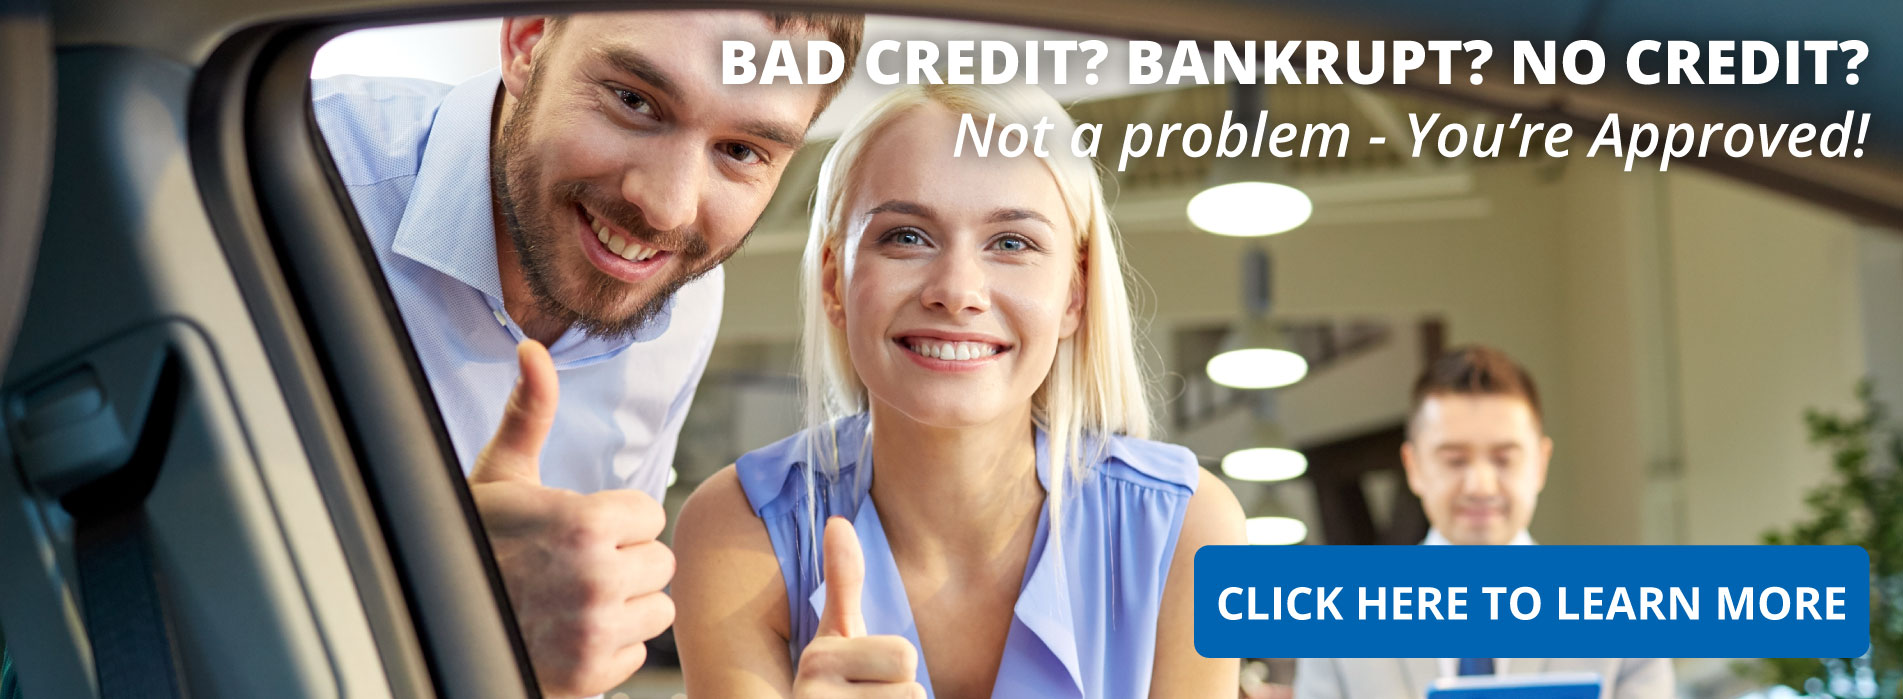 auto credit loan approval - no problem